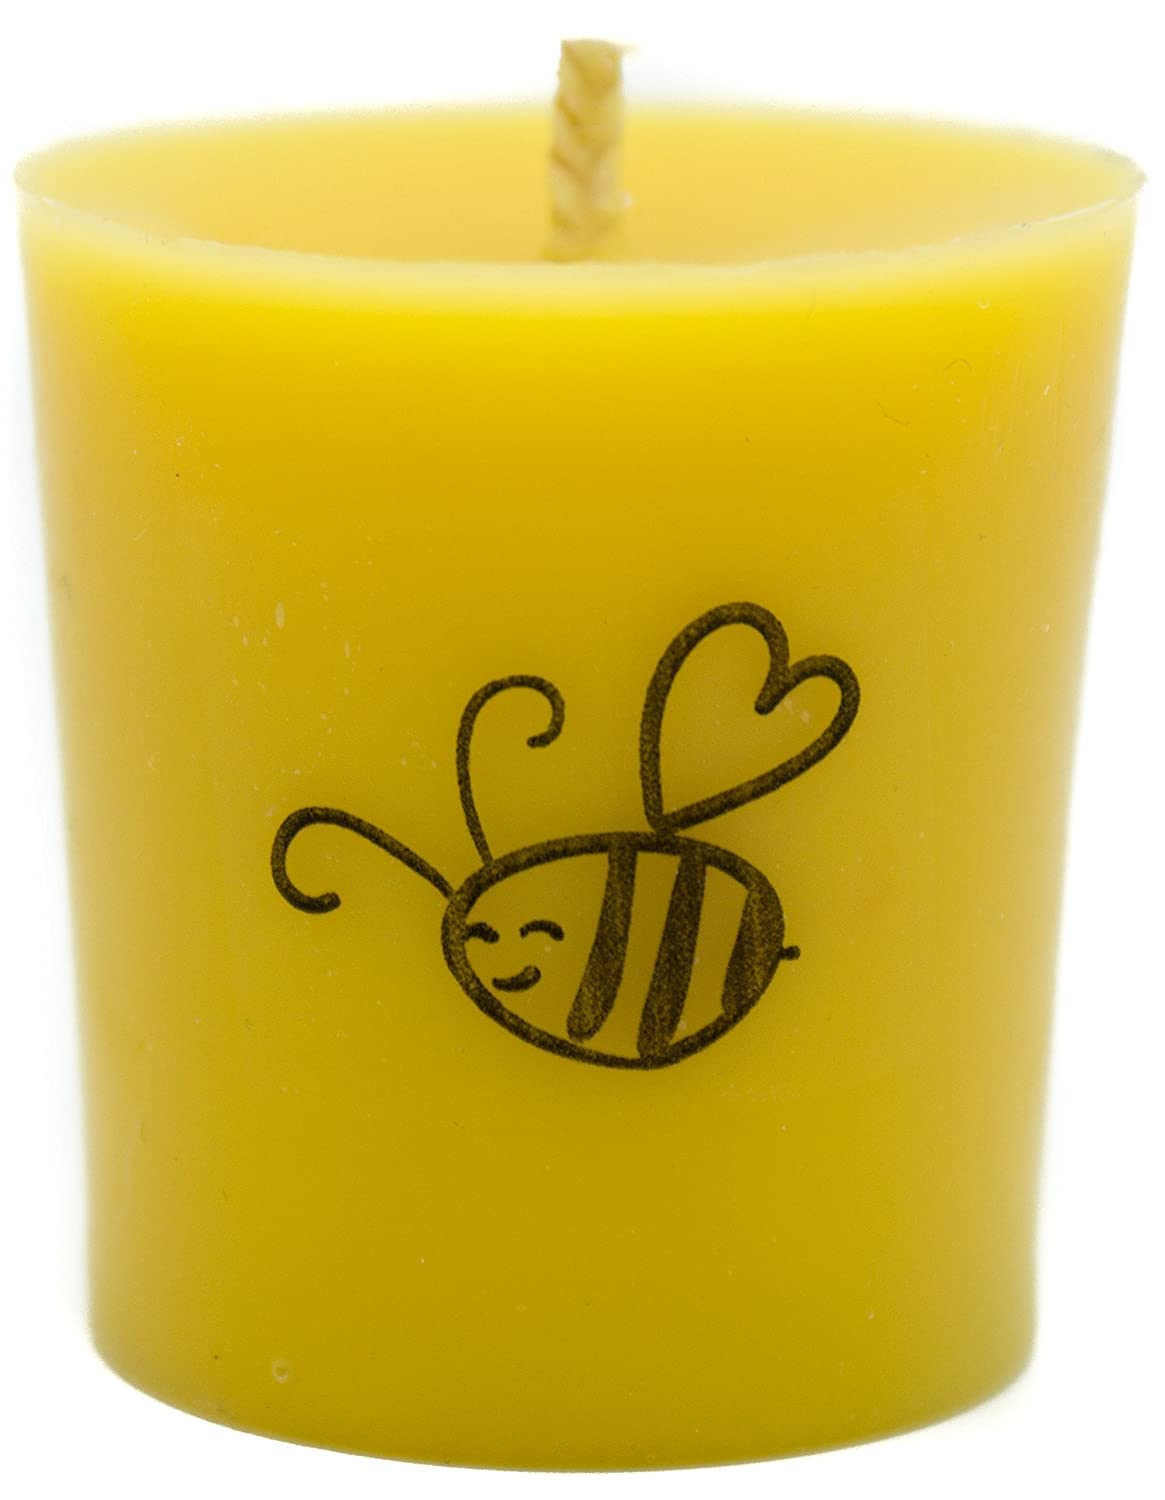 Beeswax Votive Candle Making Kit: Perfect for Beginners, 100% Pure Beeswax MakingYourOwnCandles Ltd